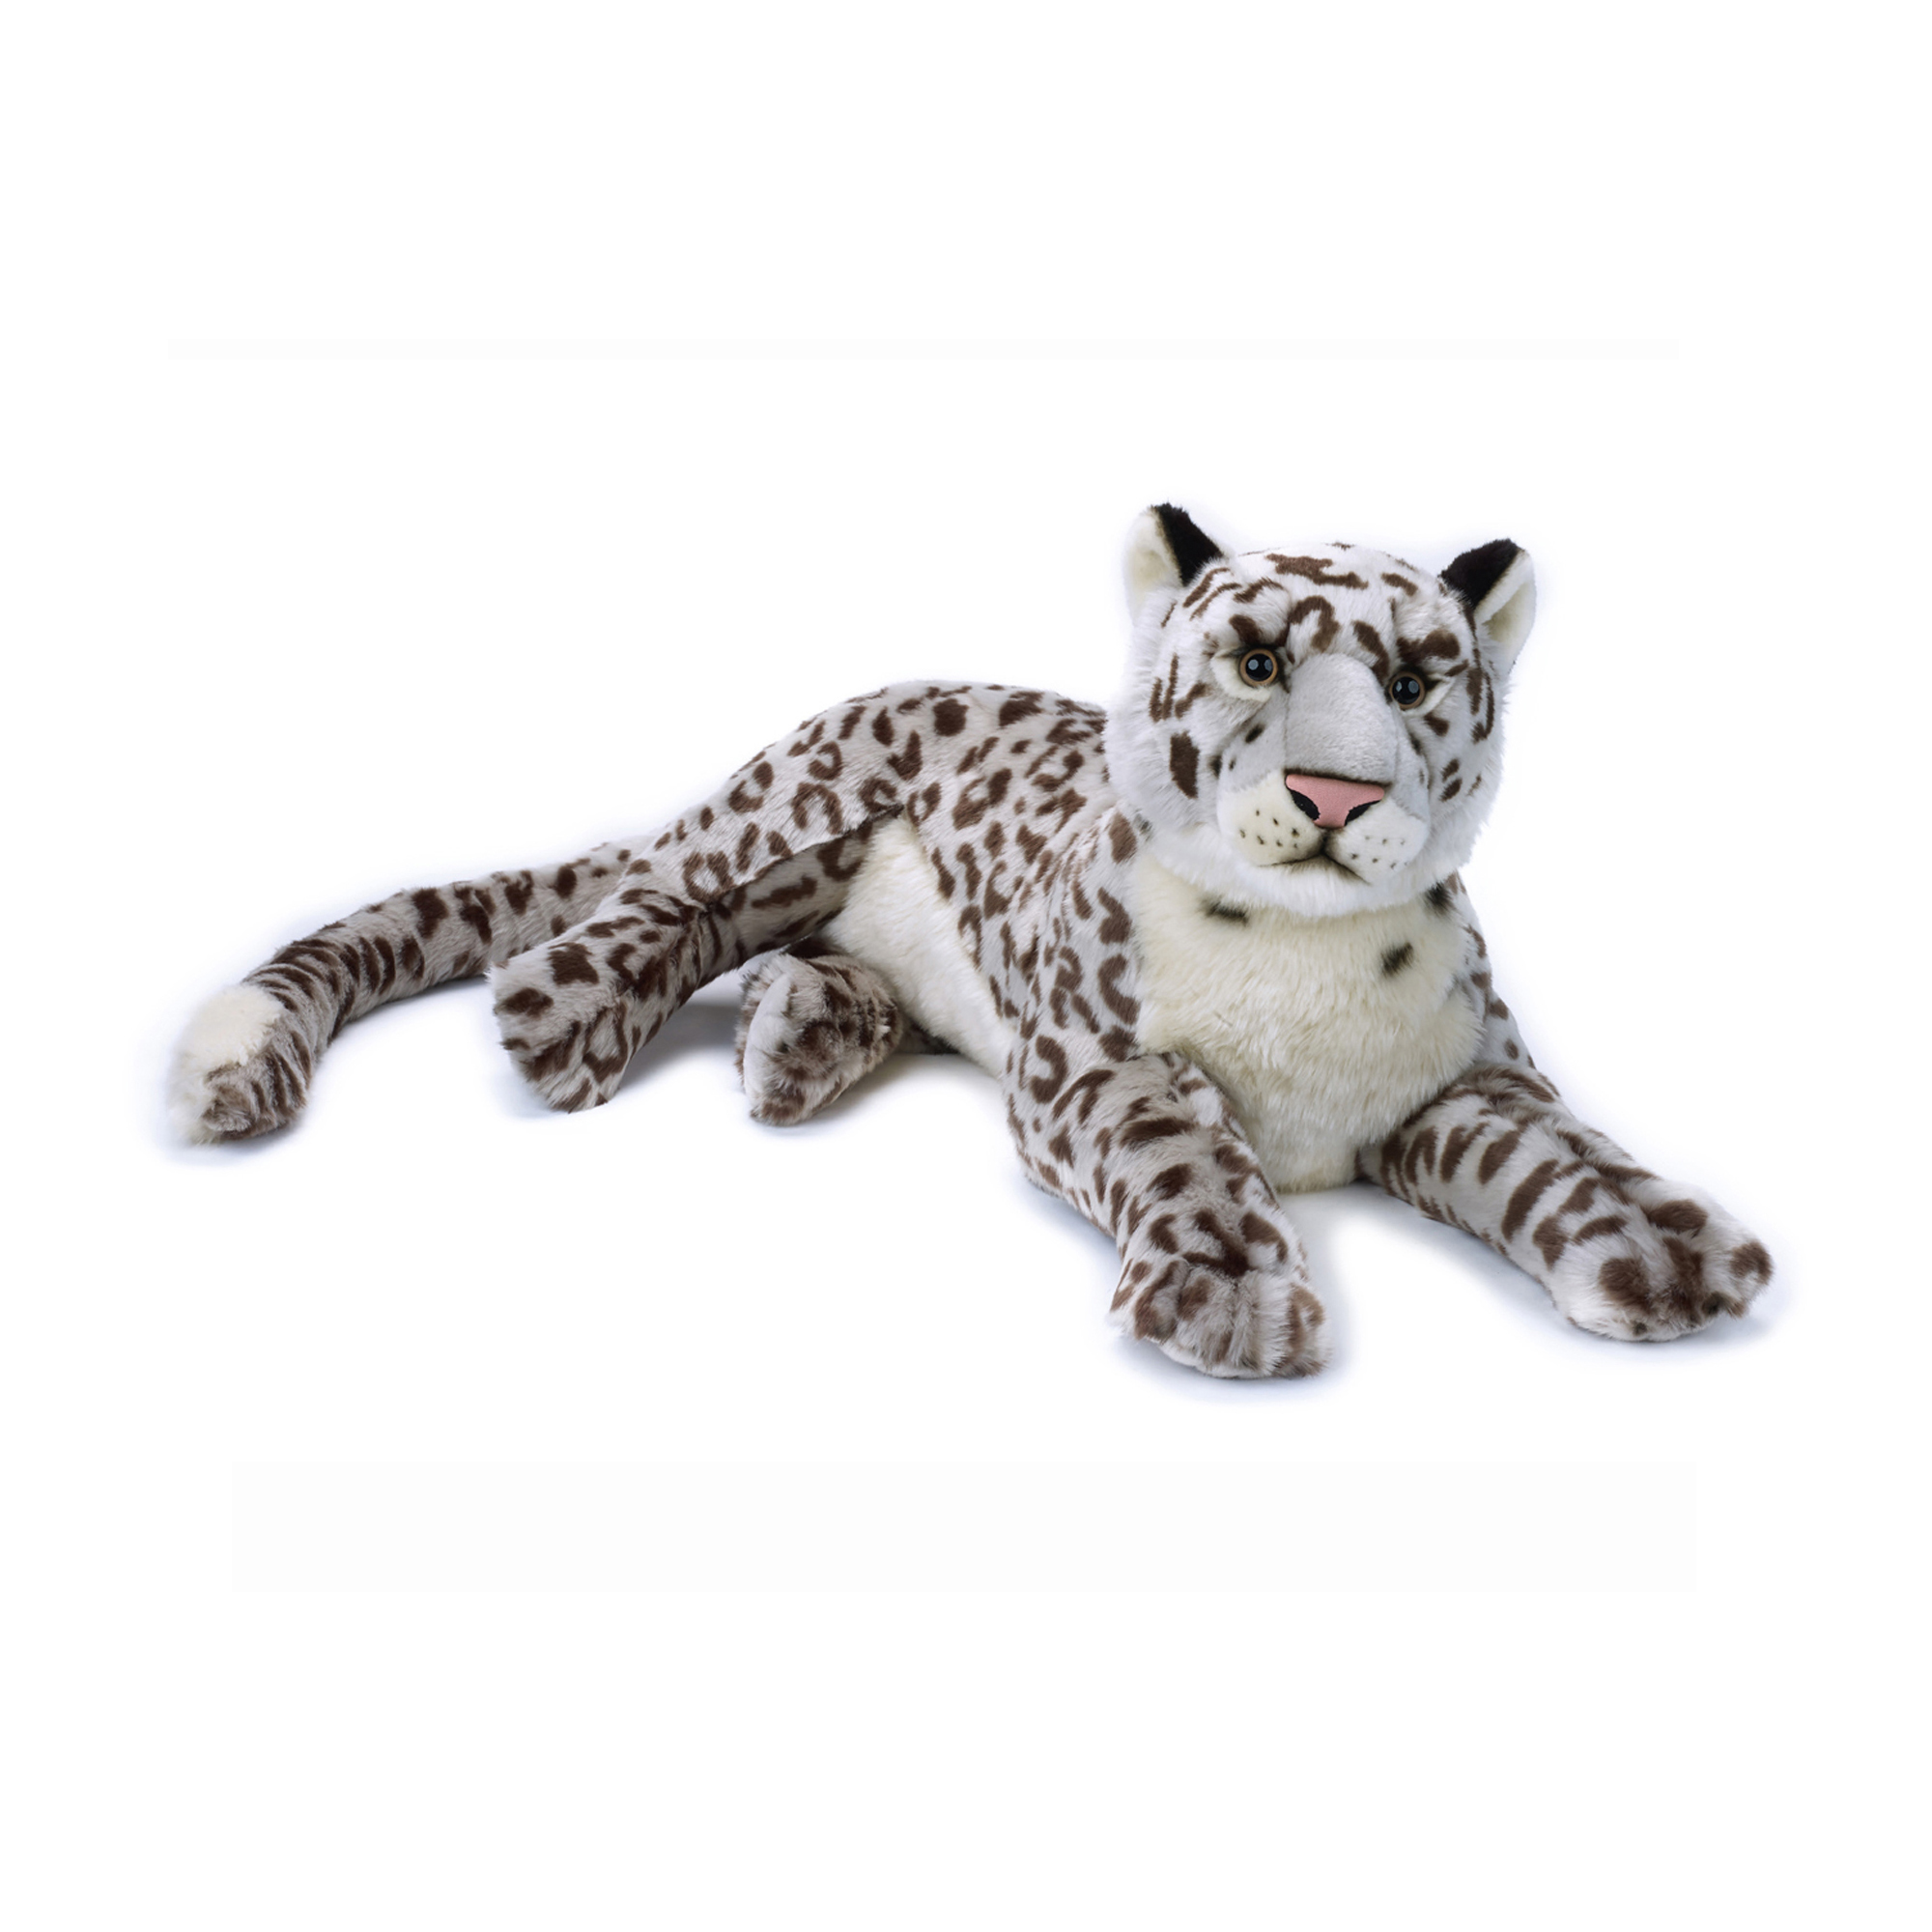 Lelly National Geographic Plush, Snow Leopard by National Geographics